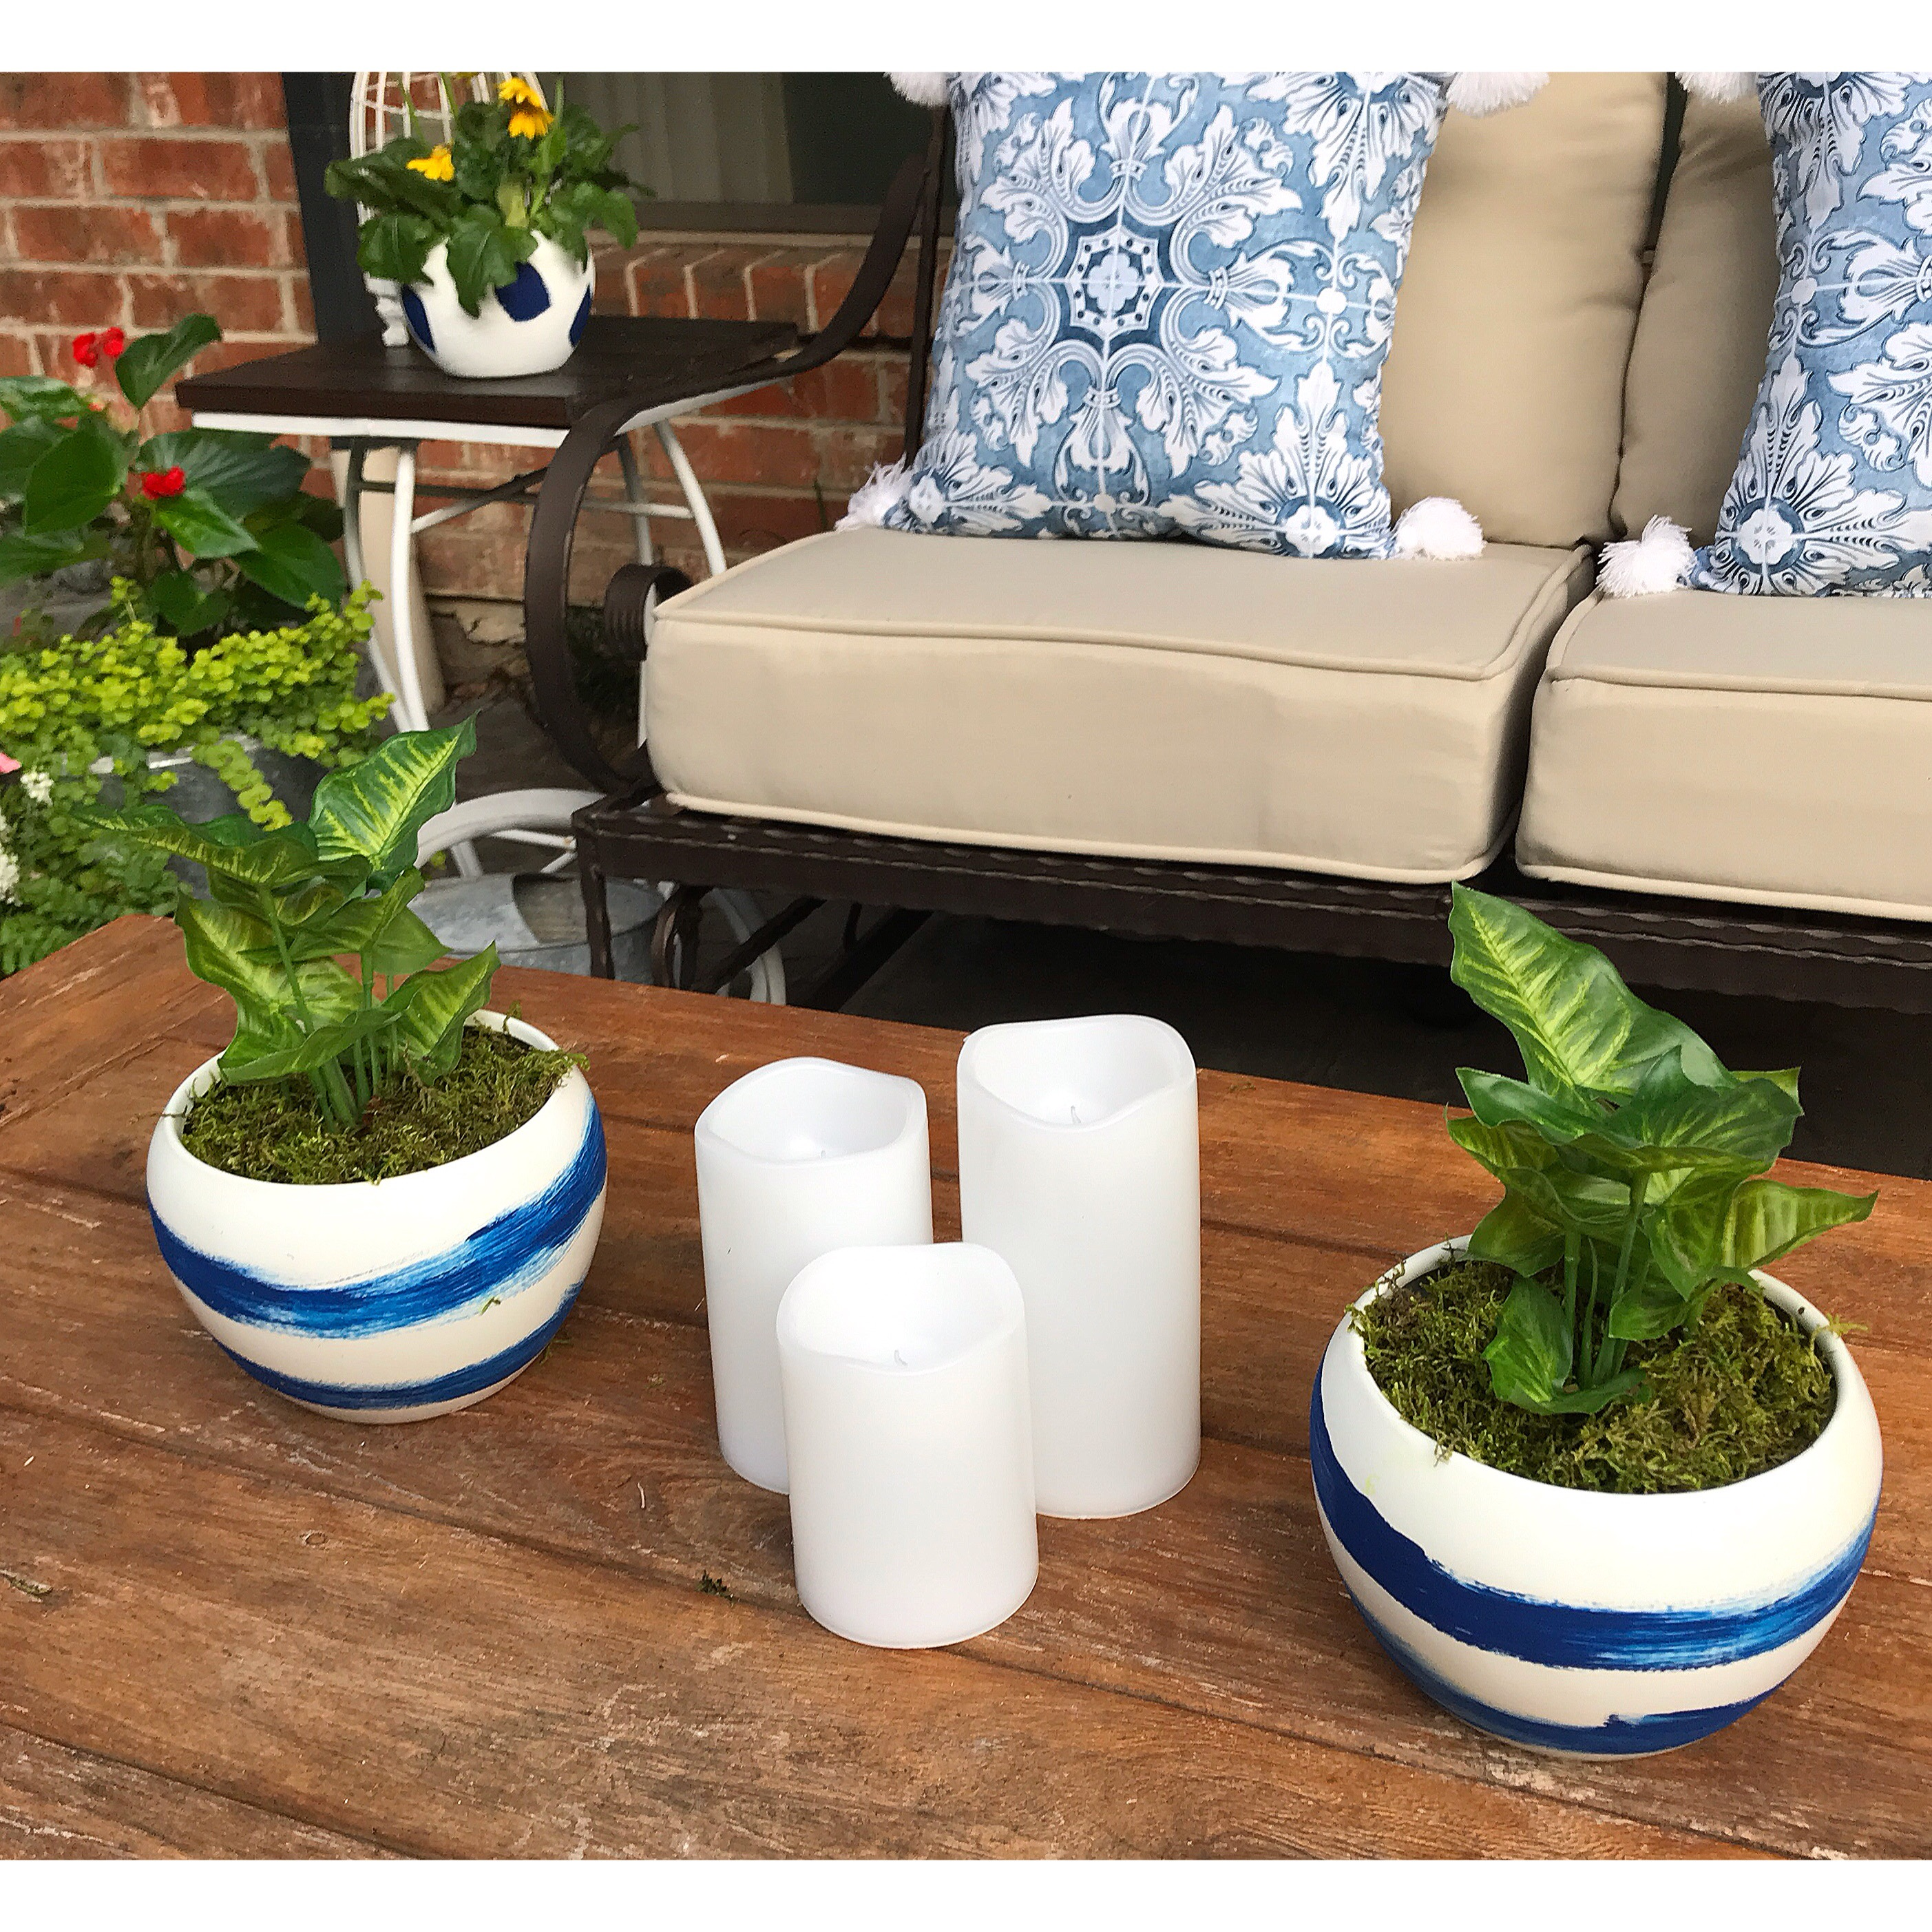 Candles and blue and white pots